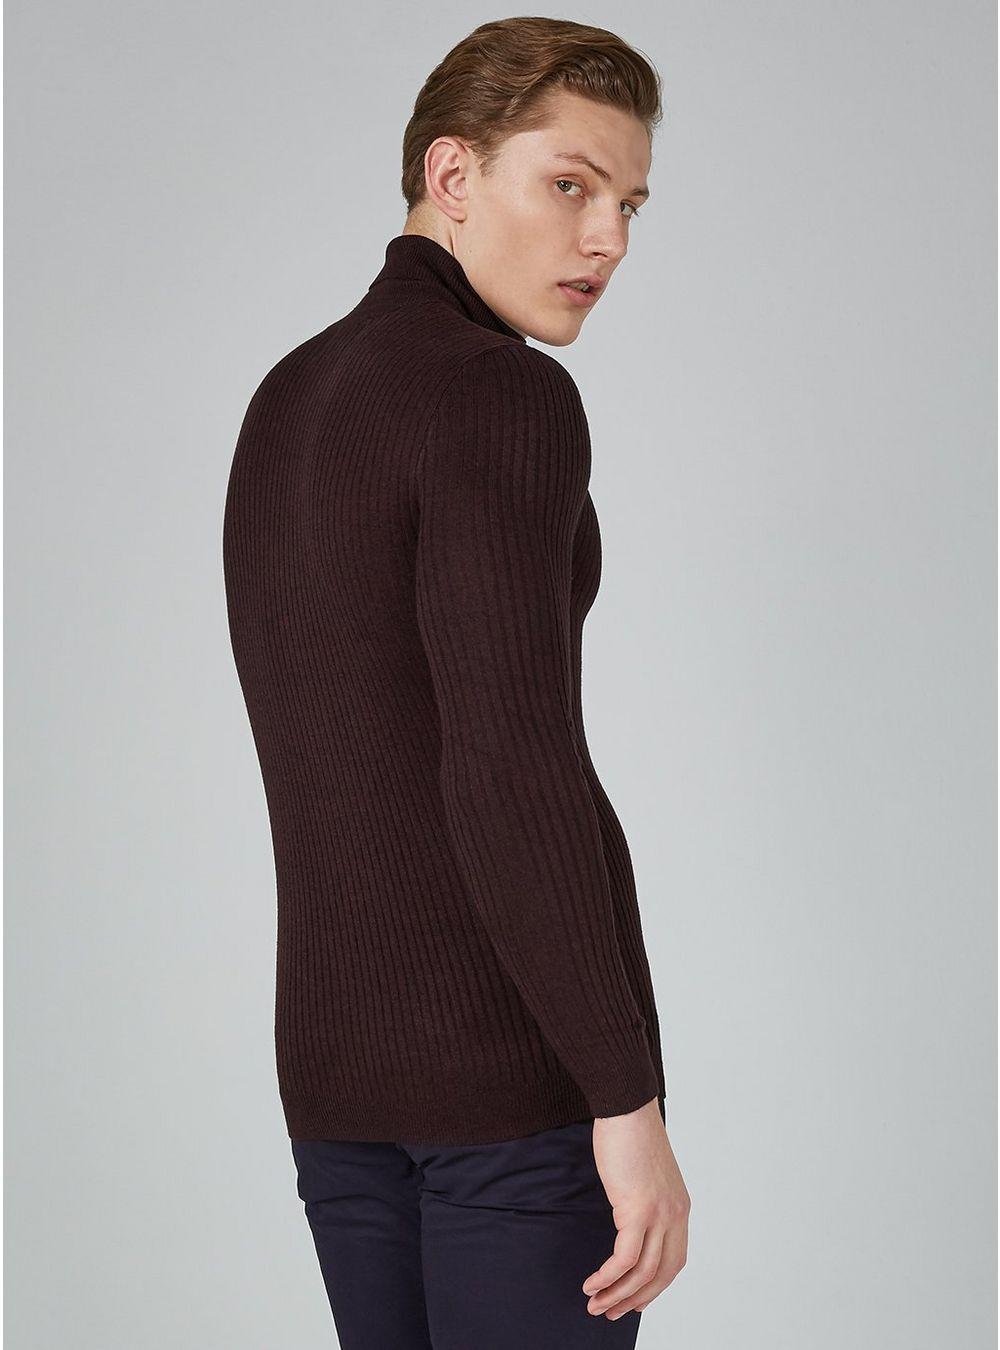 TOPMAN Synthetic Burgundy And Black Twist Muscle Ribbed Roll Neck Sweater in Red for Men